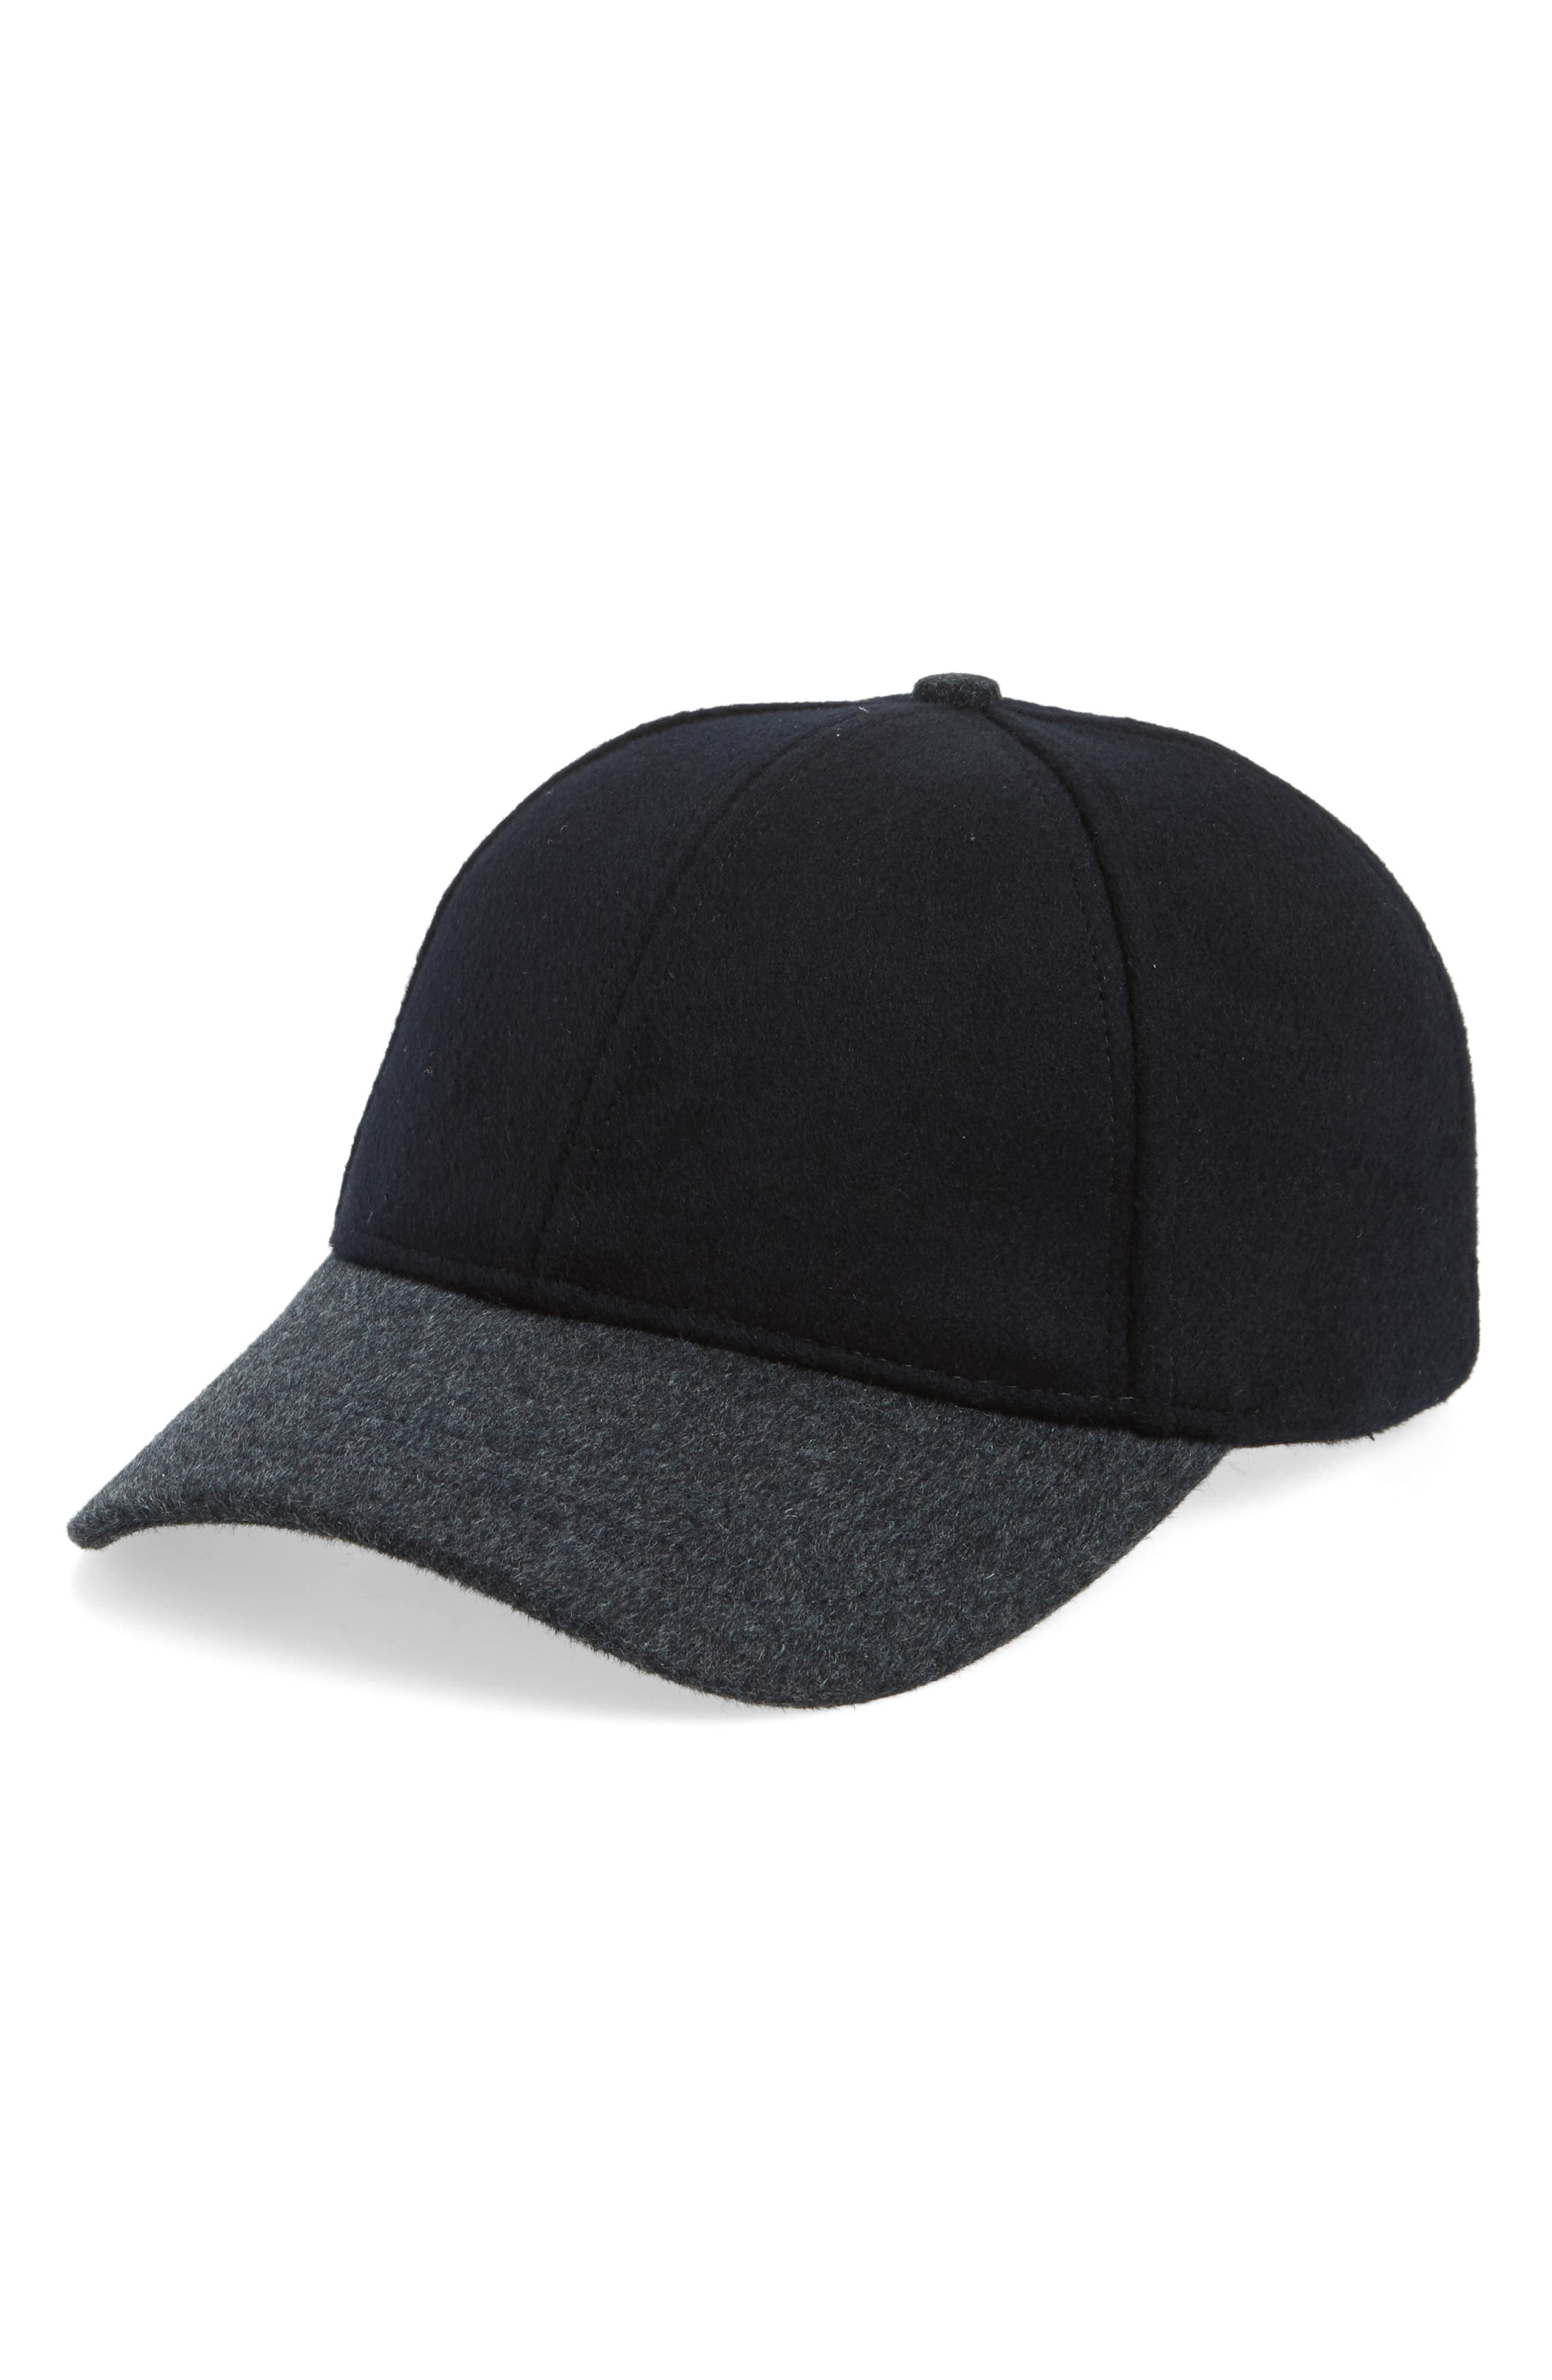 Alternate Image 1 Selected - Sole Society Two-Tone Baseball Cap